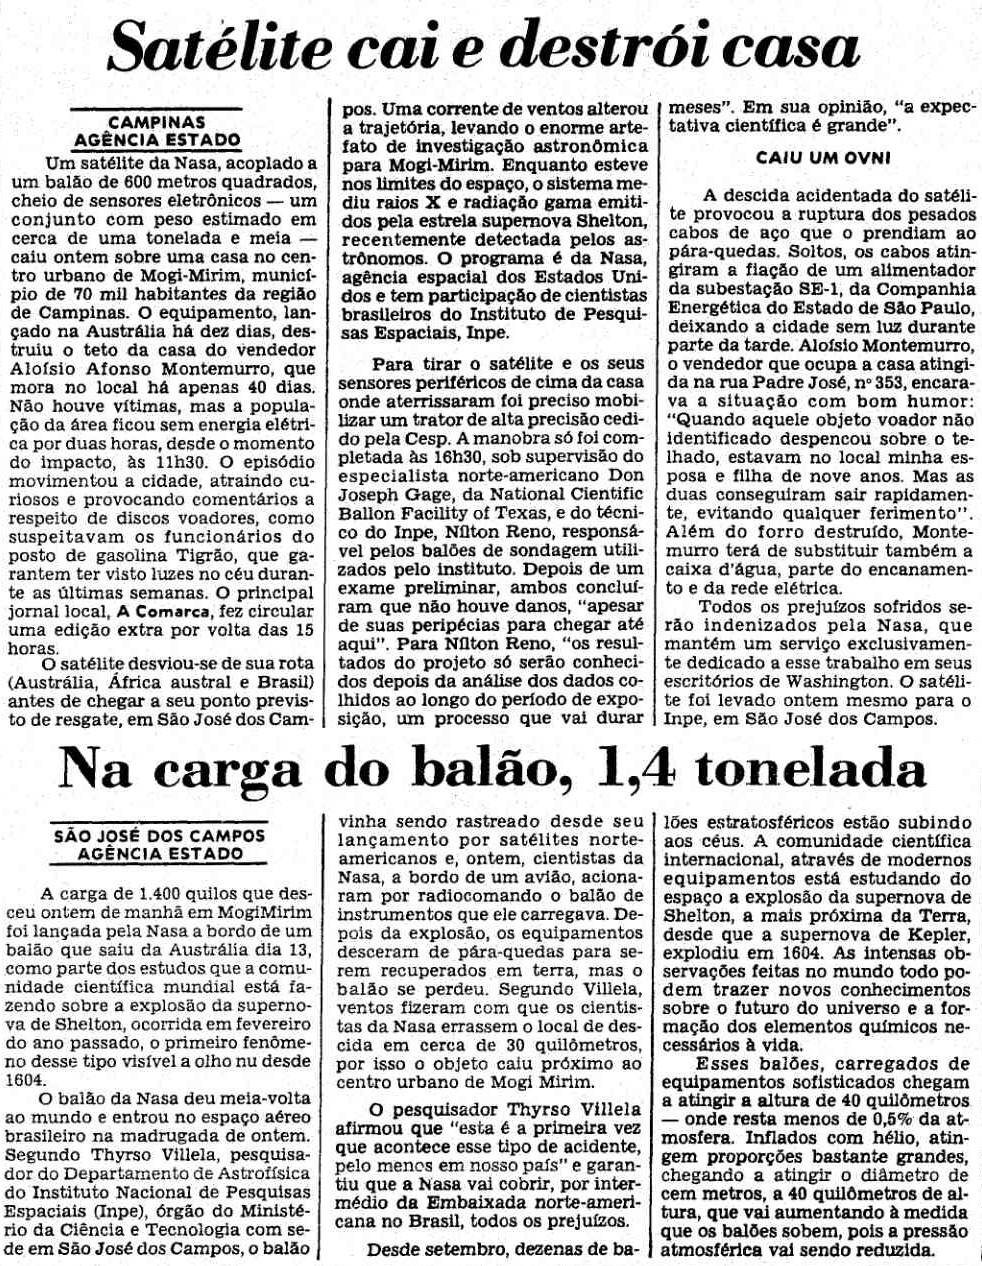 The news about the accidented landing of JACEE-8 published on Febraury 26 by the Estado de Sao Paulo journal